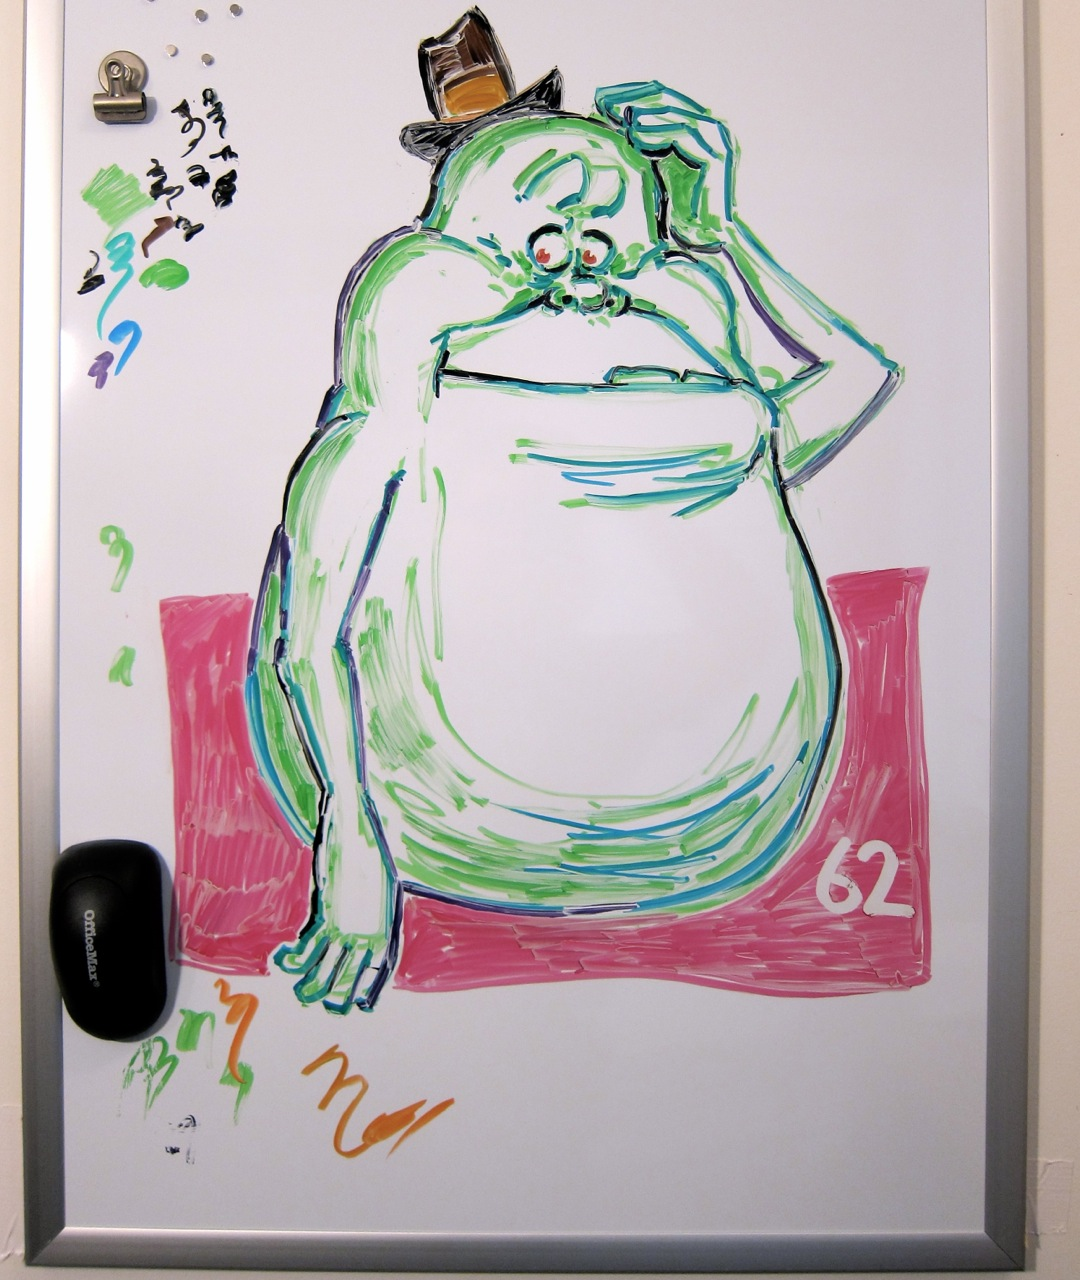 """New Digs"", #62. Got a whiteboard for my home studio today. It's a bit different from the other whiteboard, but it'll do."